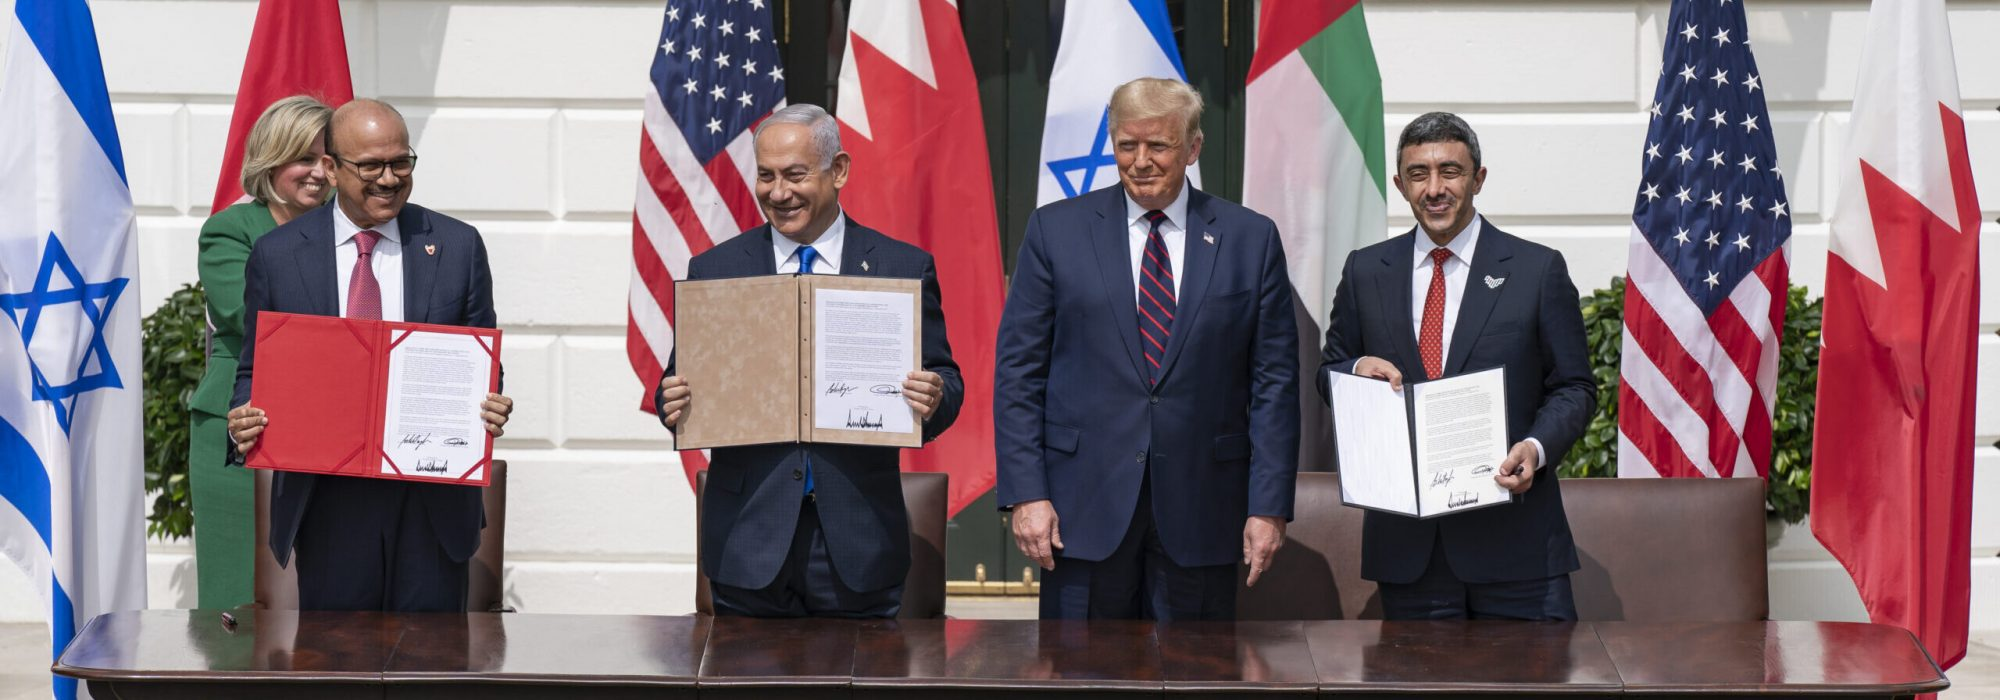 President_Trump_and_The_First_Lady_Participate_in_an_Abraham_Accords_Signing_Ceremony_(50345629858)